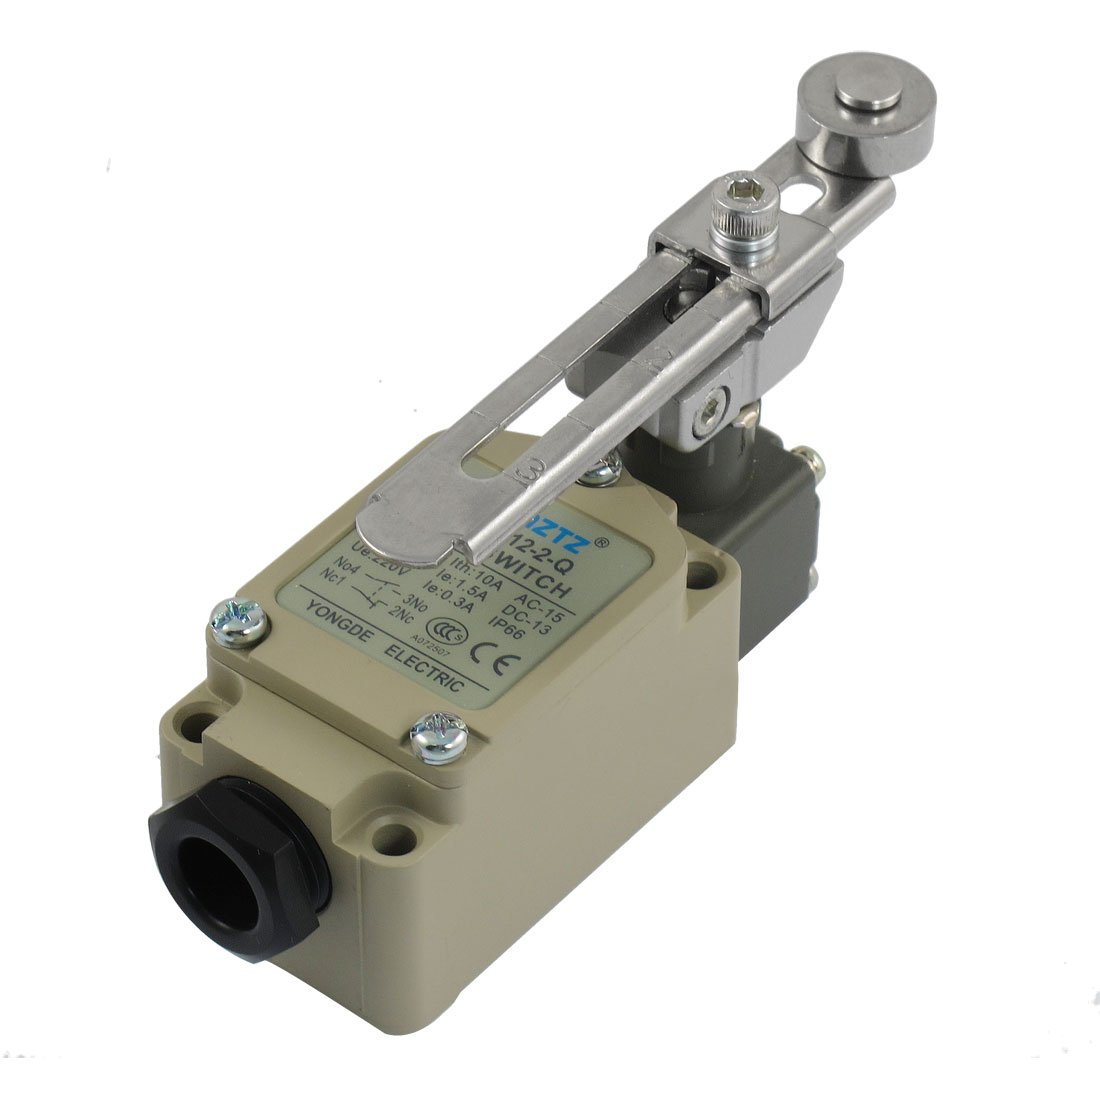 uxcell WLCA12-2-Q Adjustable Rotary Roller Lever Momentary Limit Switch 380V 10A